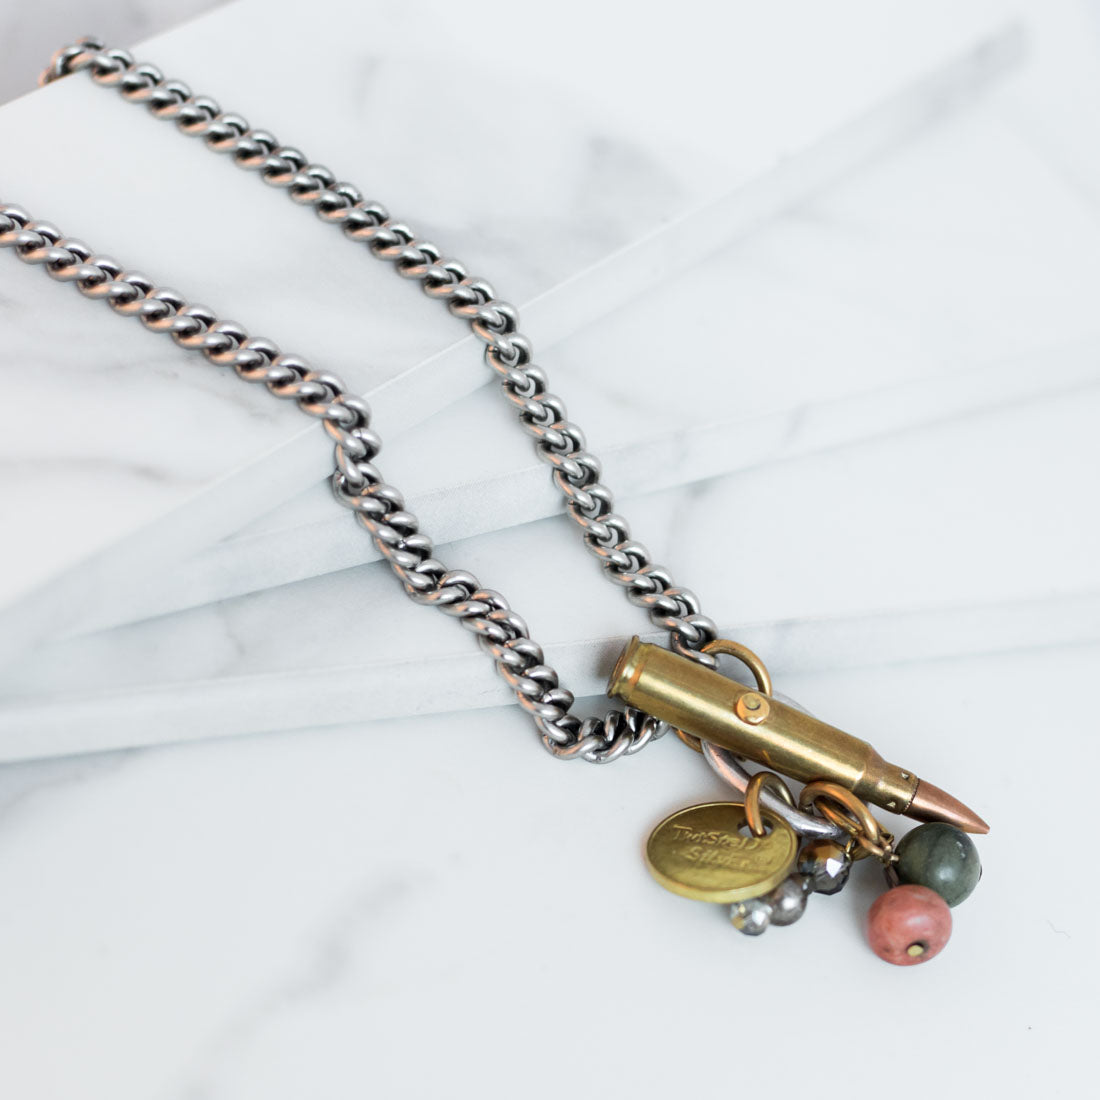 Twisted Silver Jewelry - Bullet Necklace